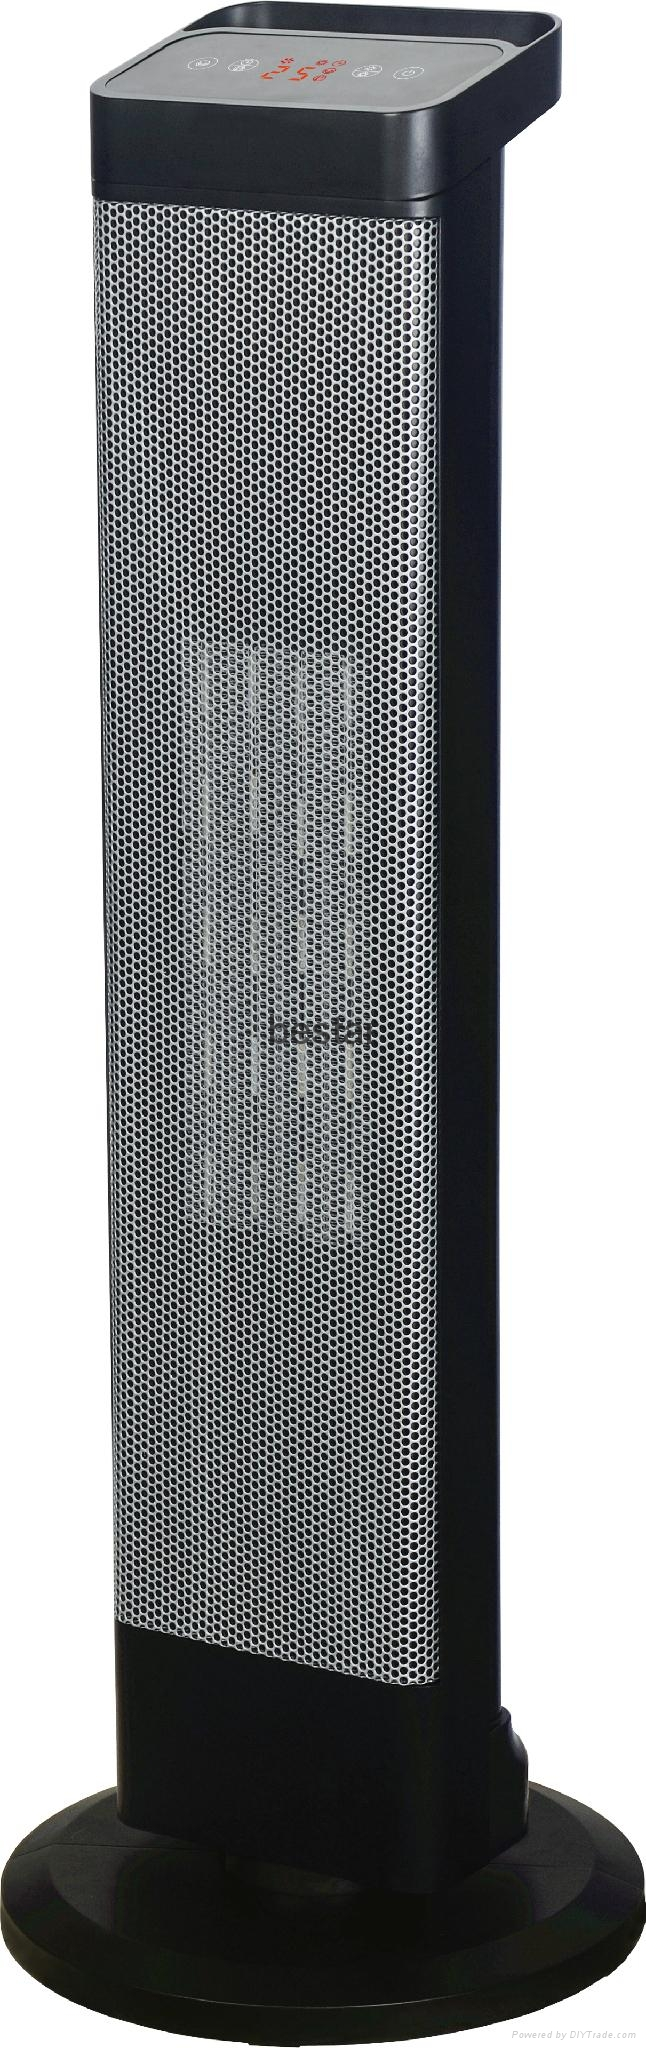 Ceramic Tower Heater with Digital Display  2